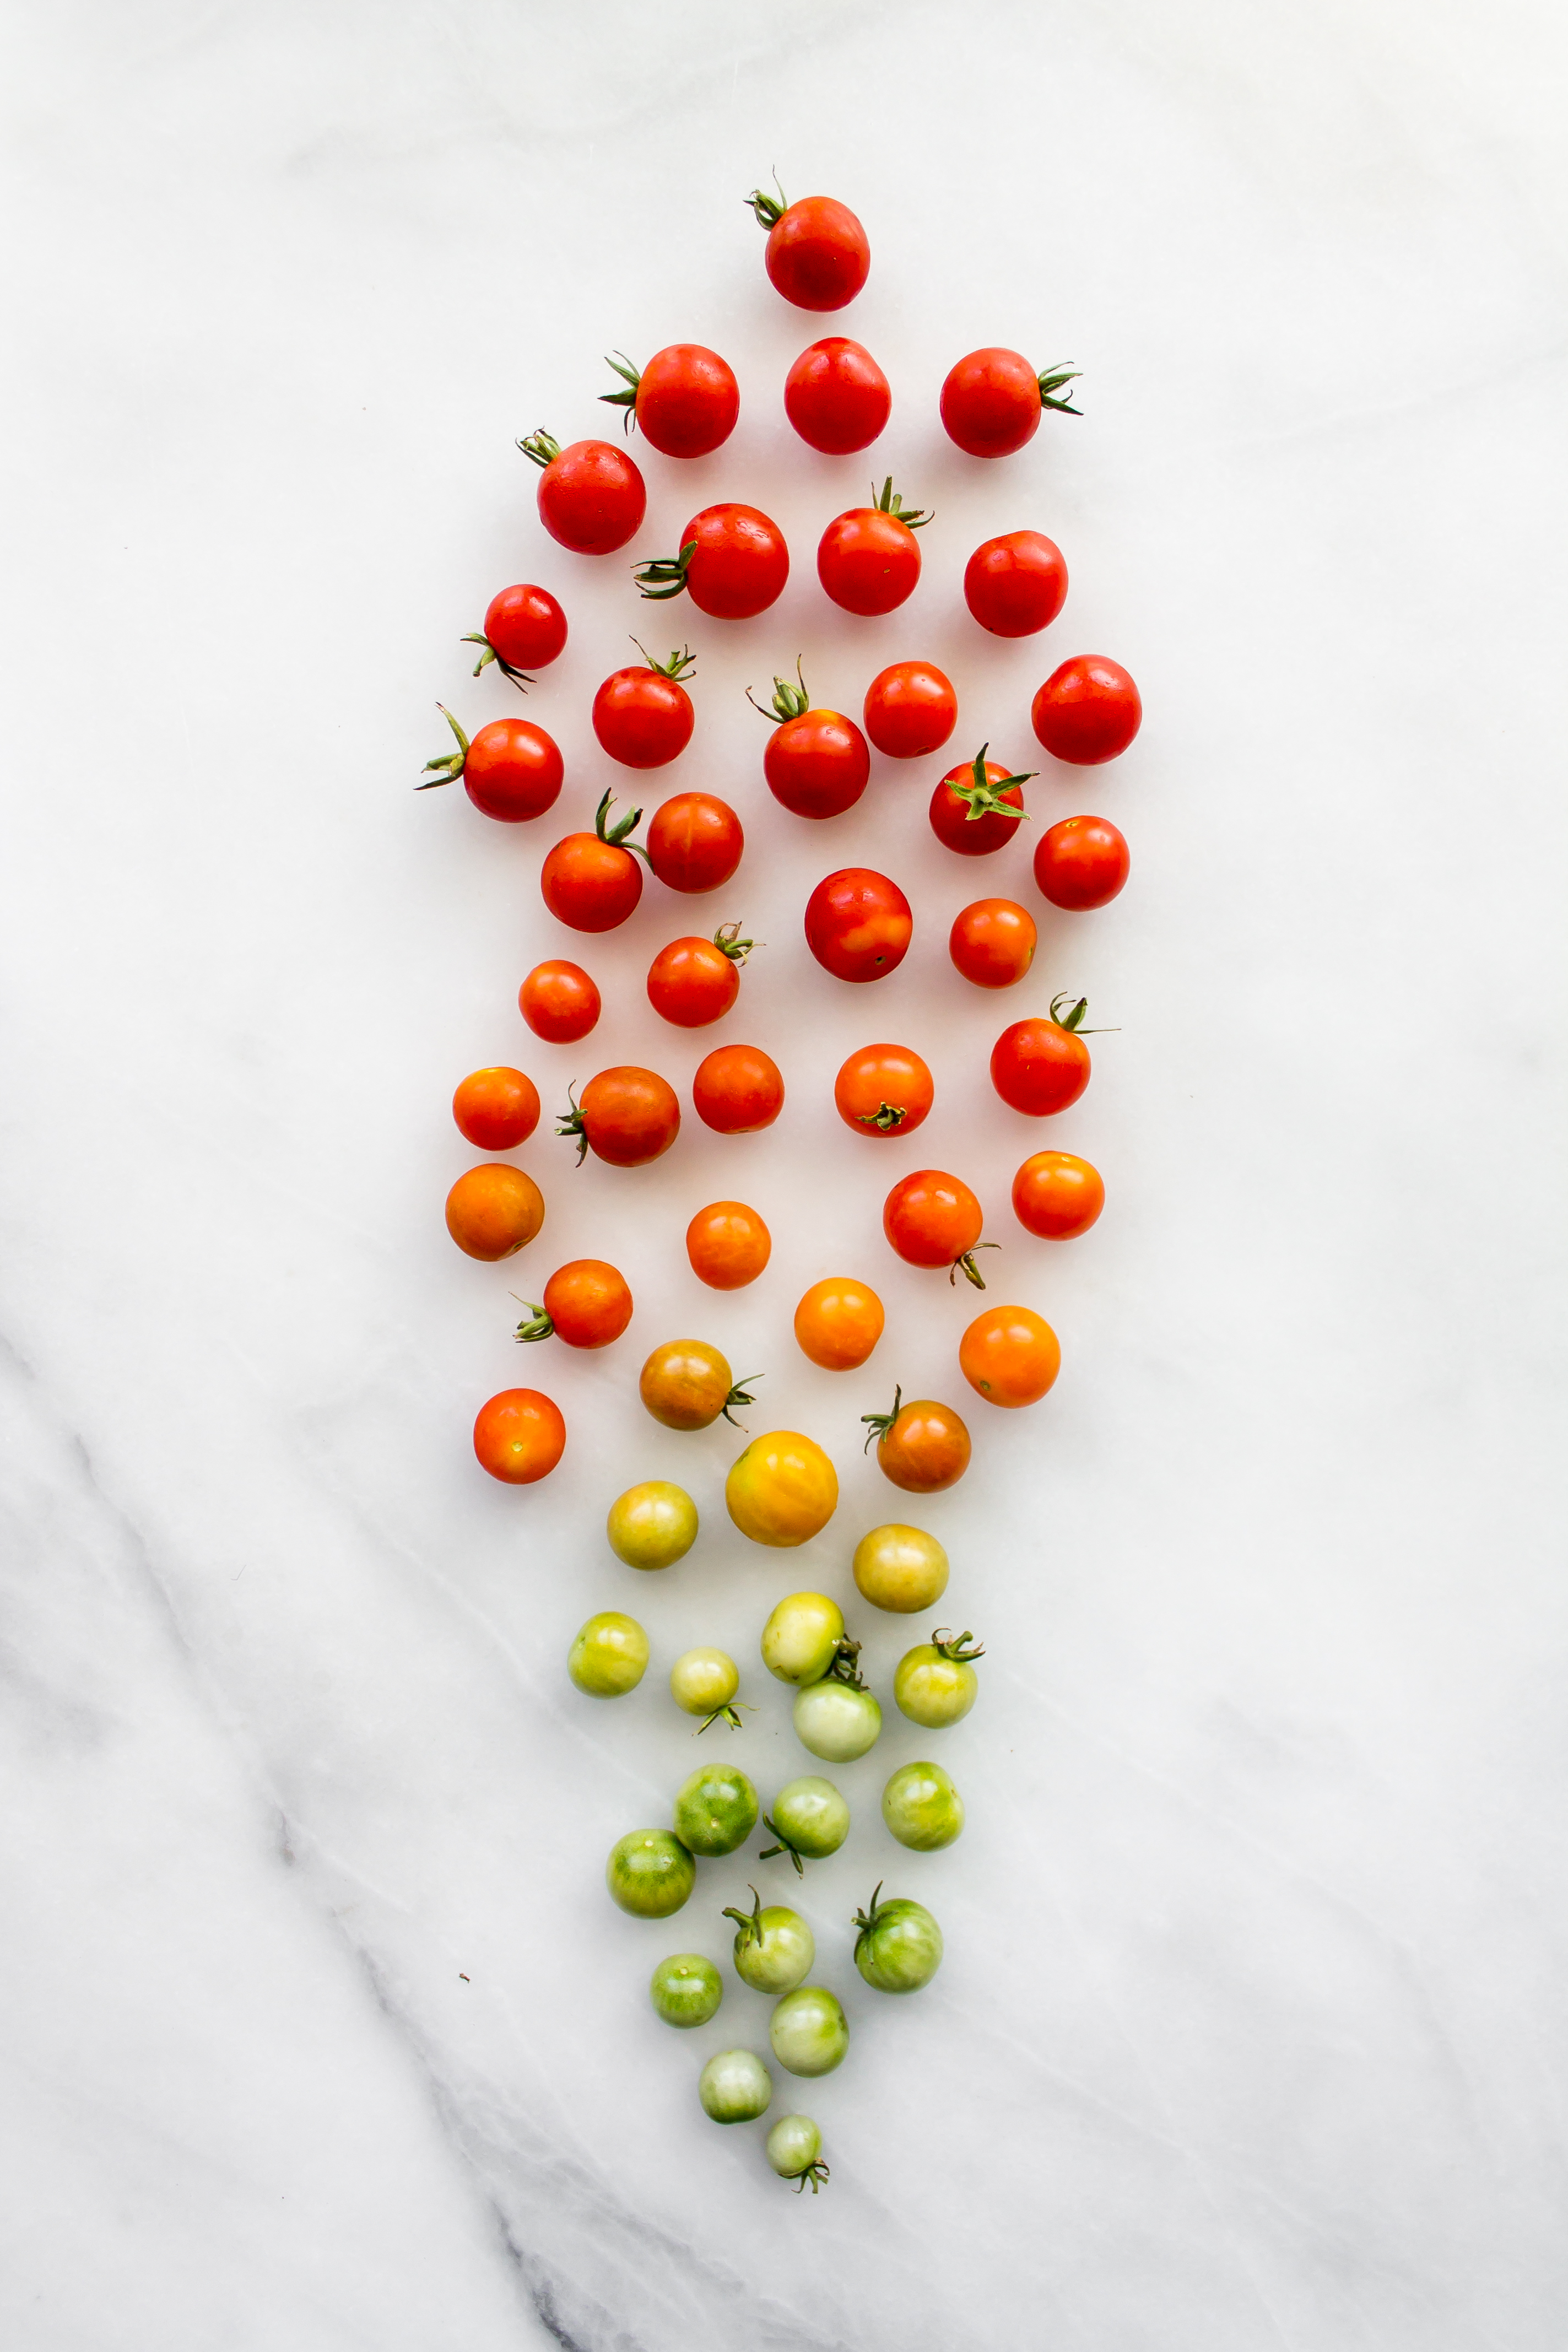 10 tomato recipes to use up your summer produce | Pass the Cookies | www.passthecookies.com